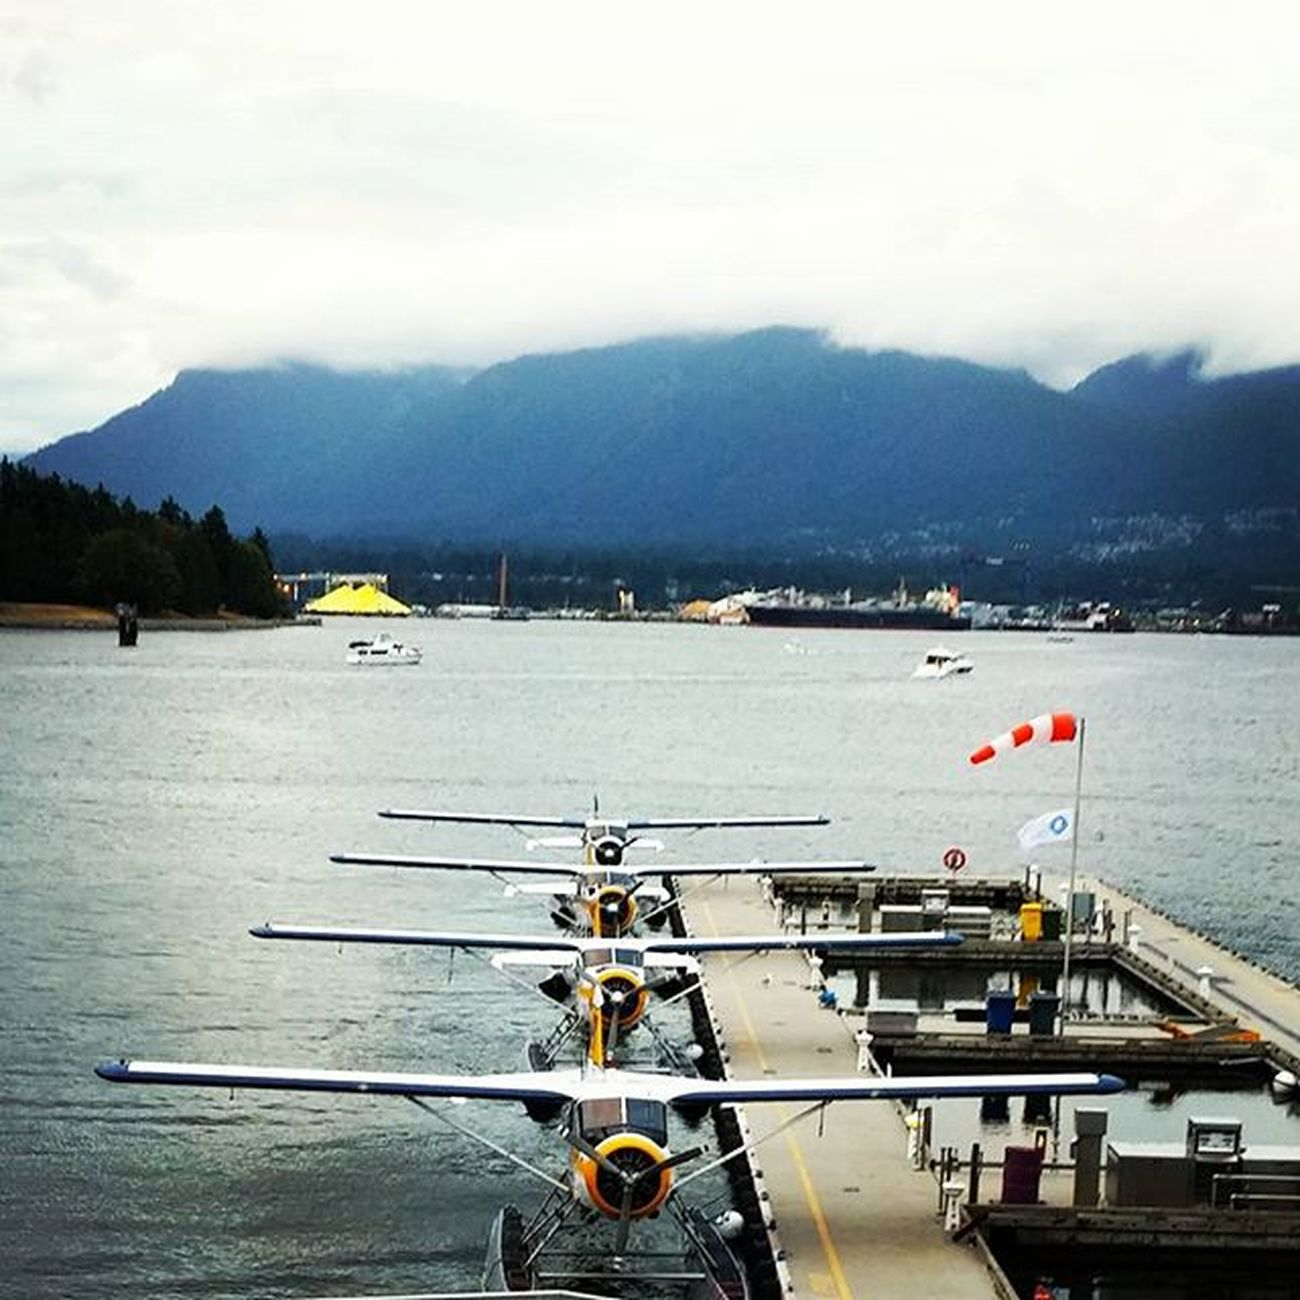 Ready for TakeOff Hydroplane CoalHarbour airport instaplane vancitybuzz mustbevancouver instavancouver northshore